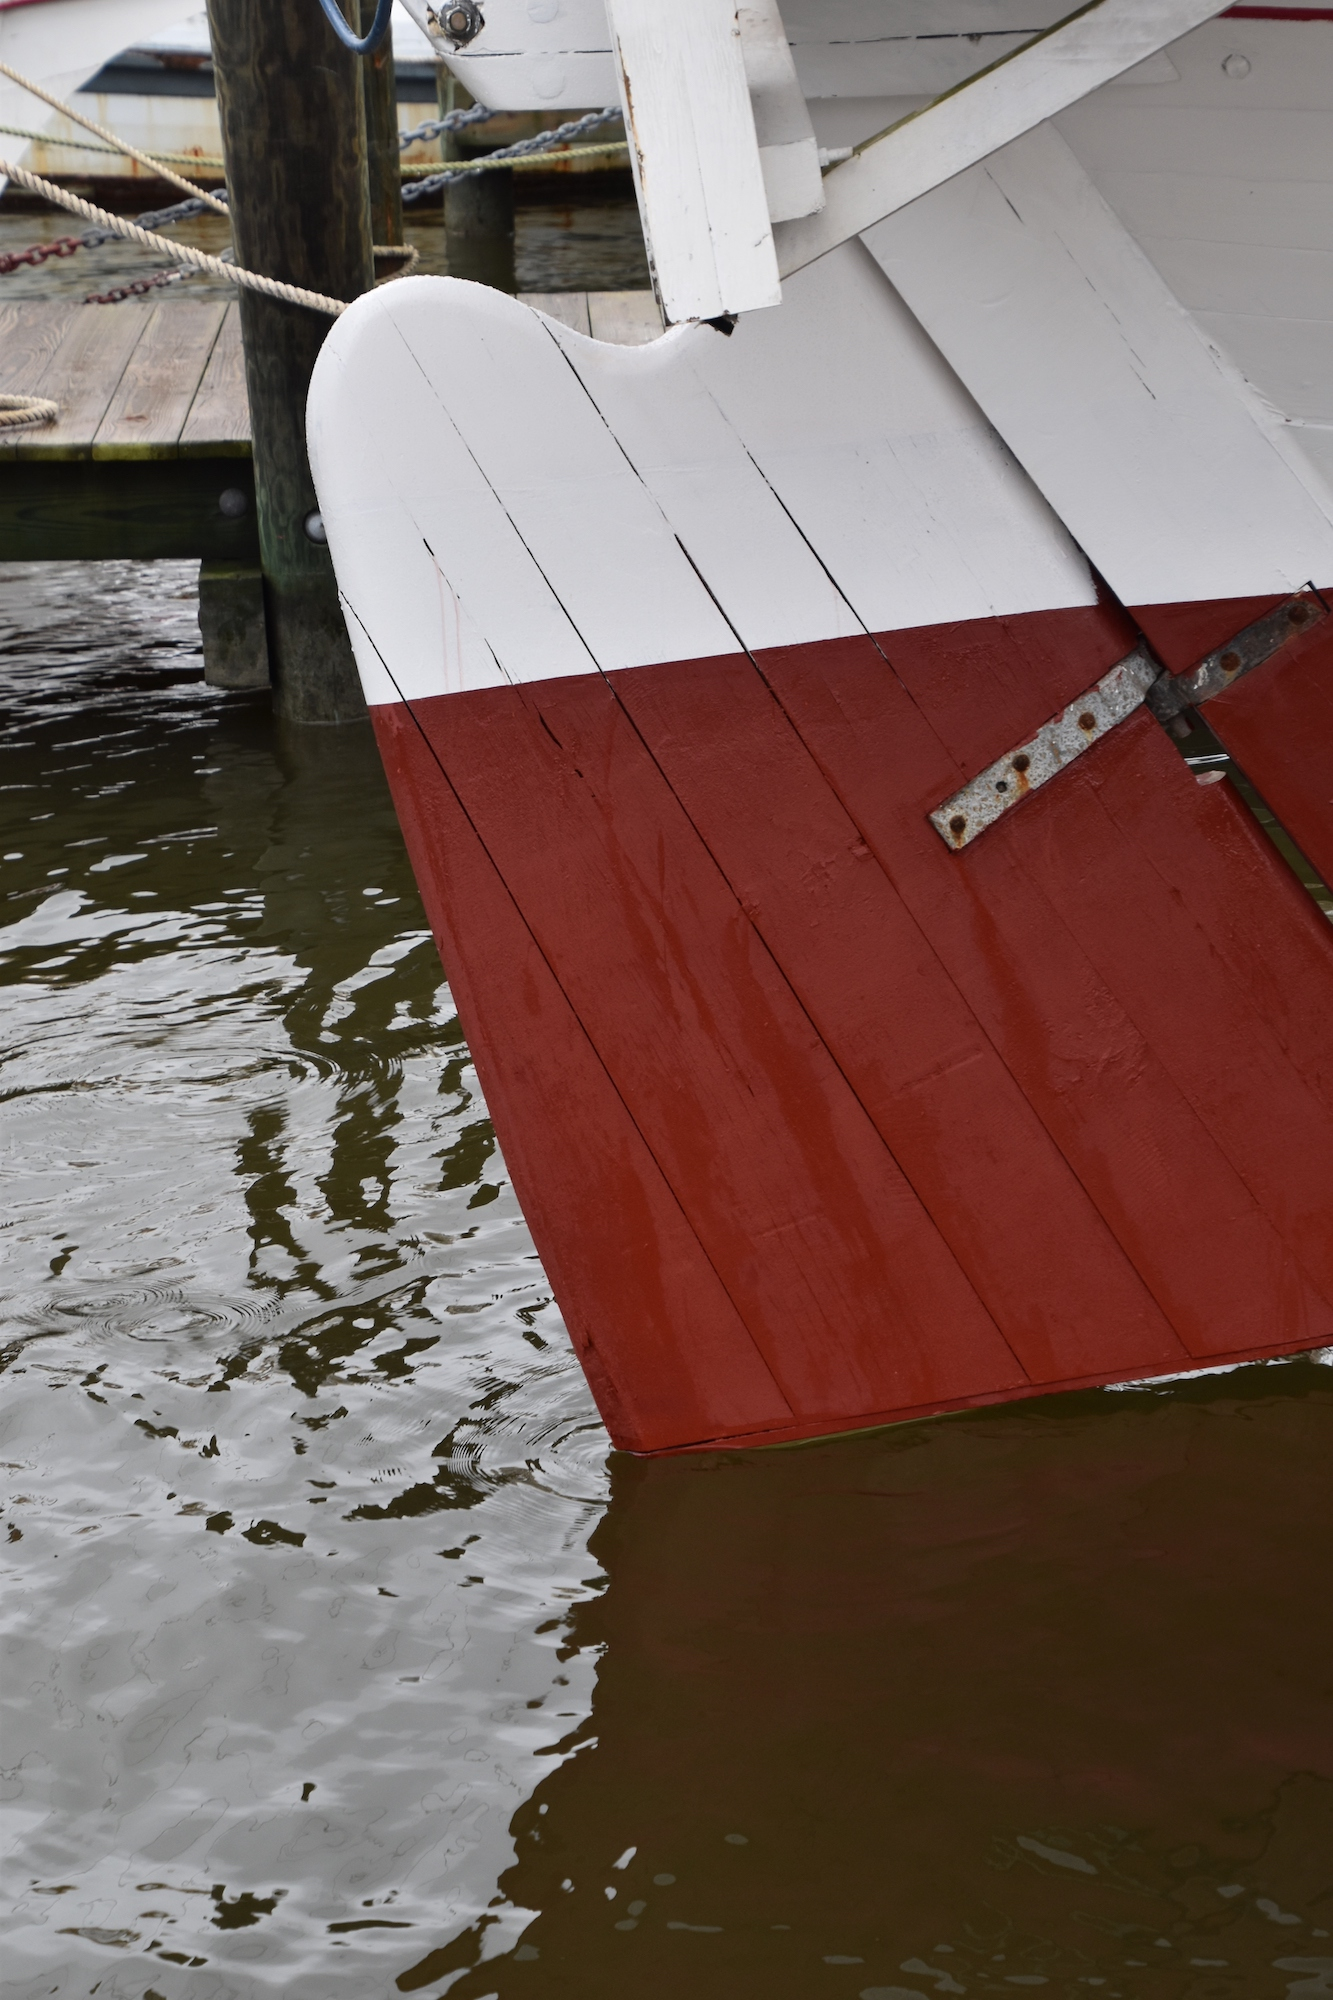 Bugeye  Edna Lockwood's  rudder touches the Miles River again on Saturday, Oct. 27, at the Chesapeake Bay Maritime Museum.